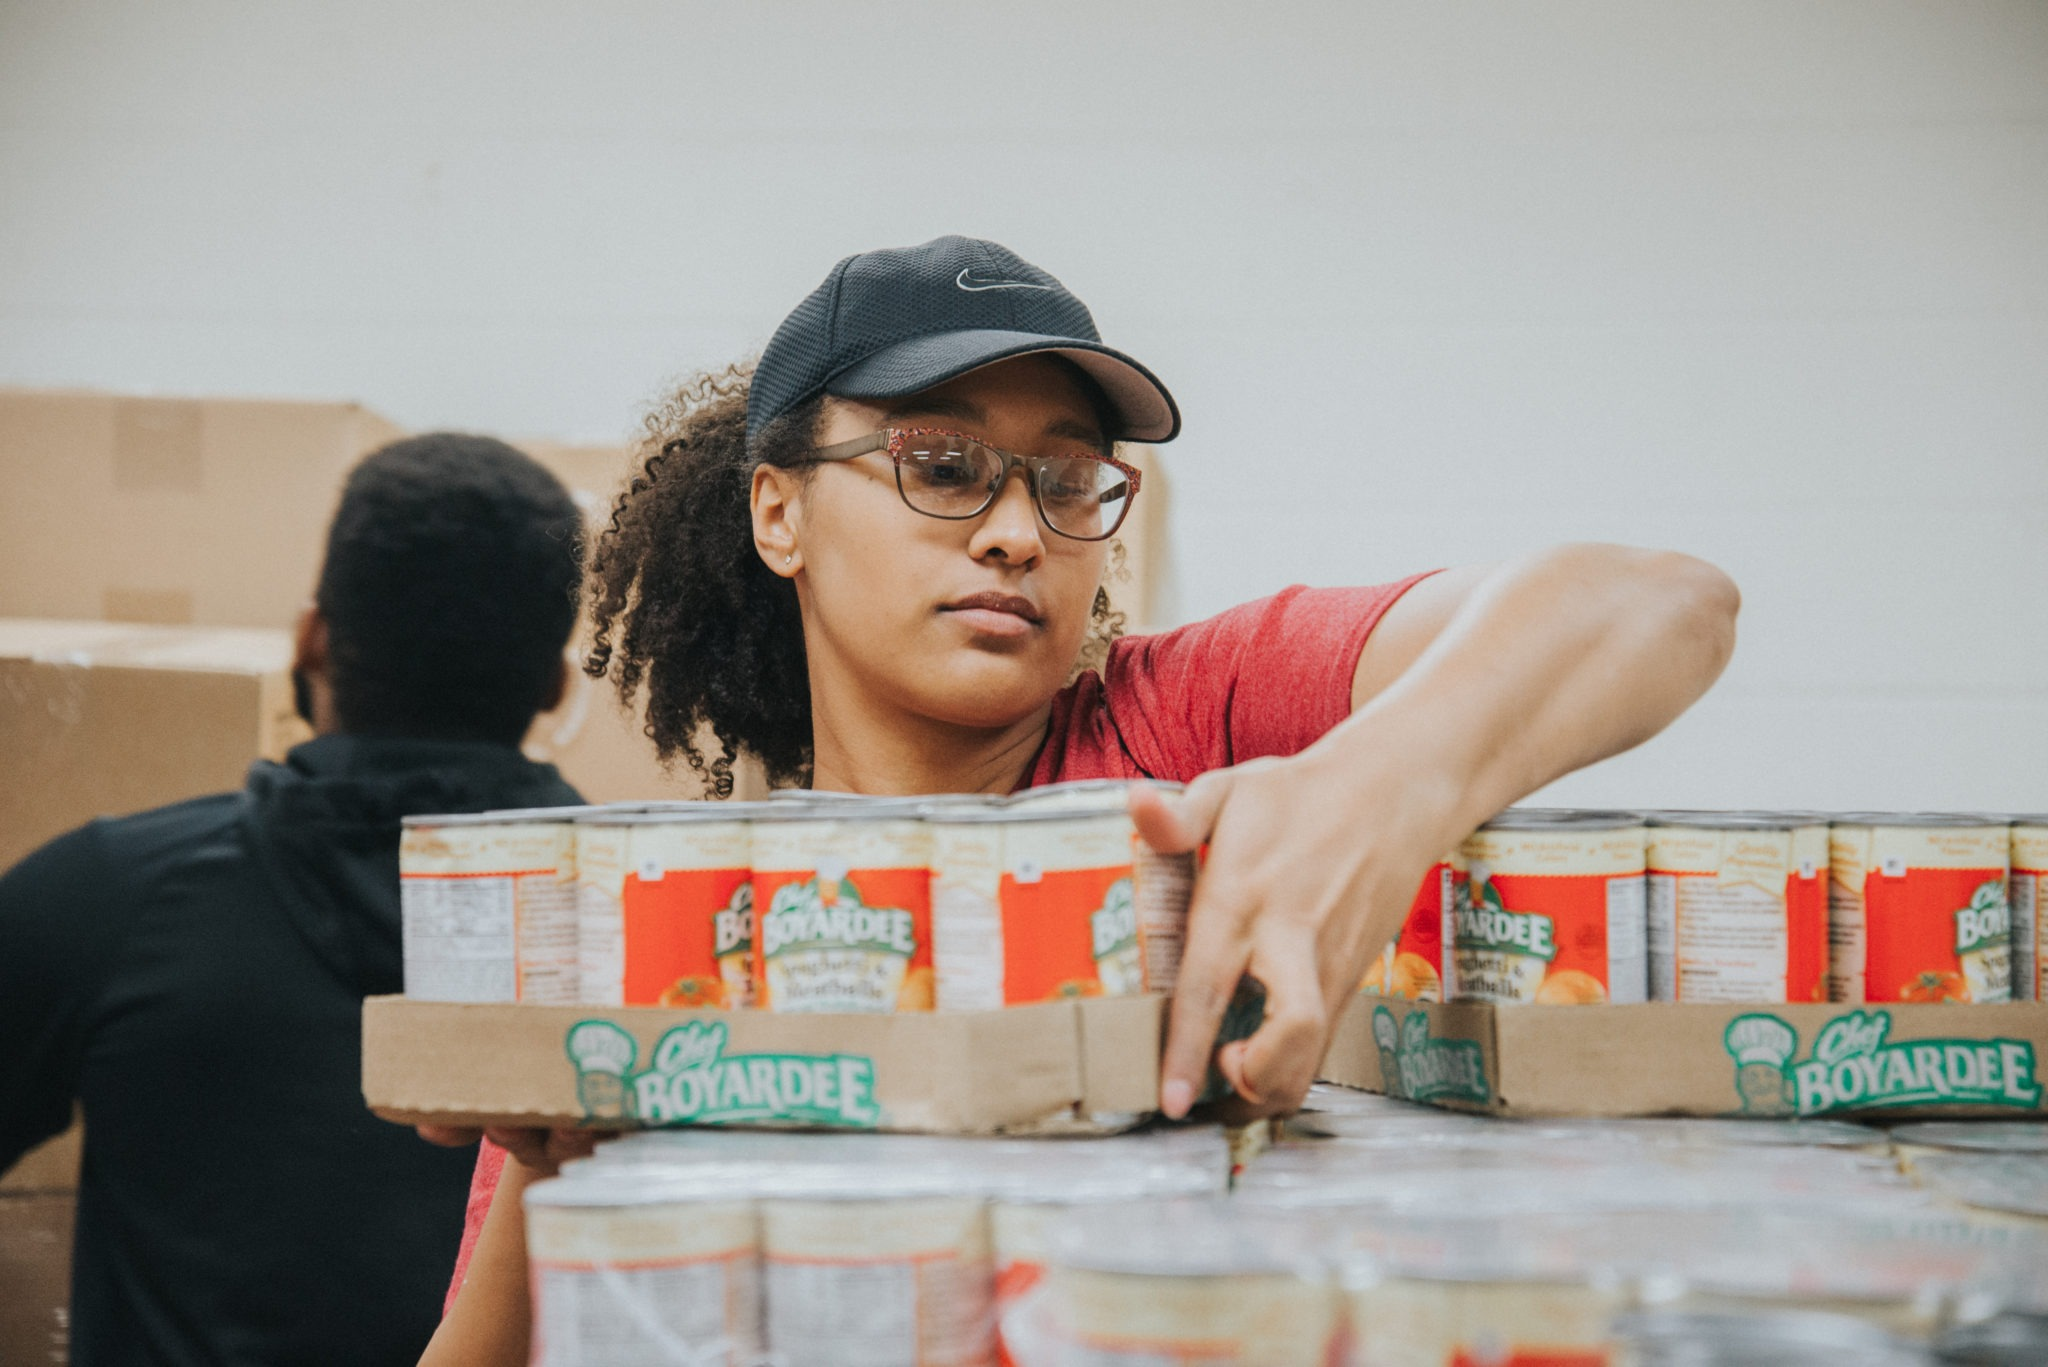 A Mercer University student volunteers at the food bank.